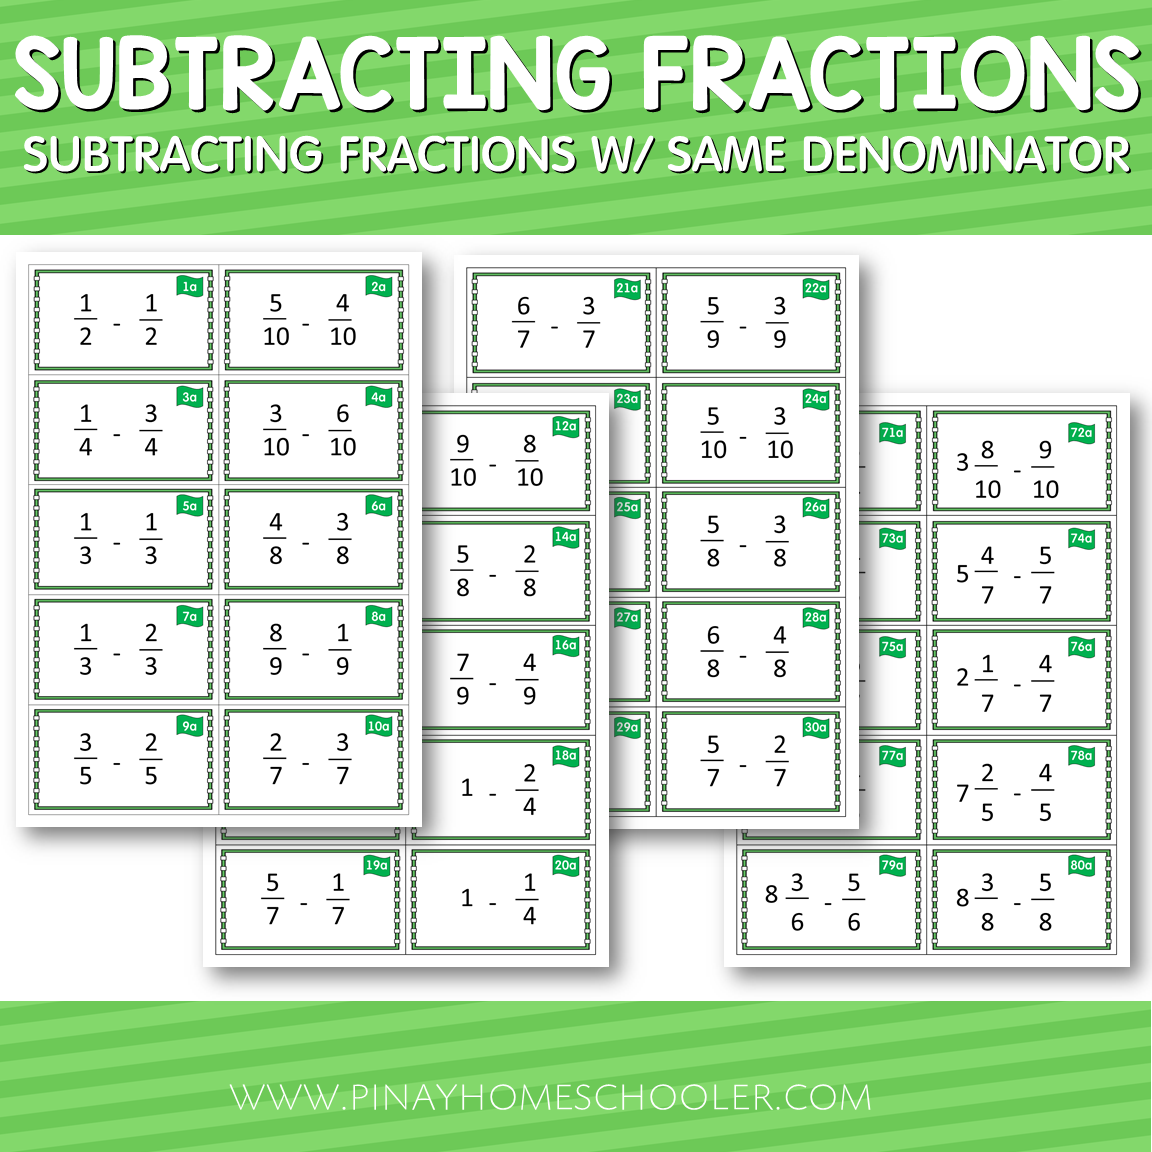 Montessori Subtracting Fractions with Same Denominator Cards